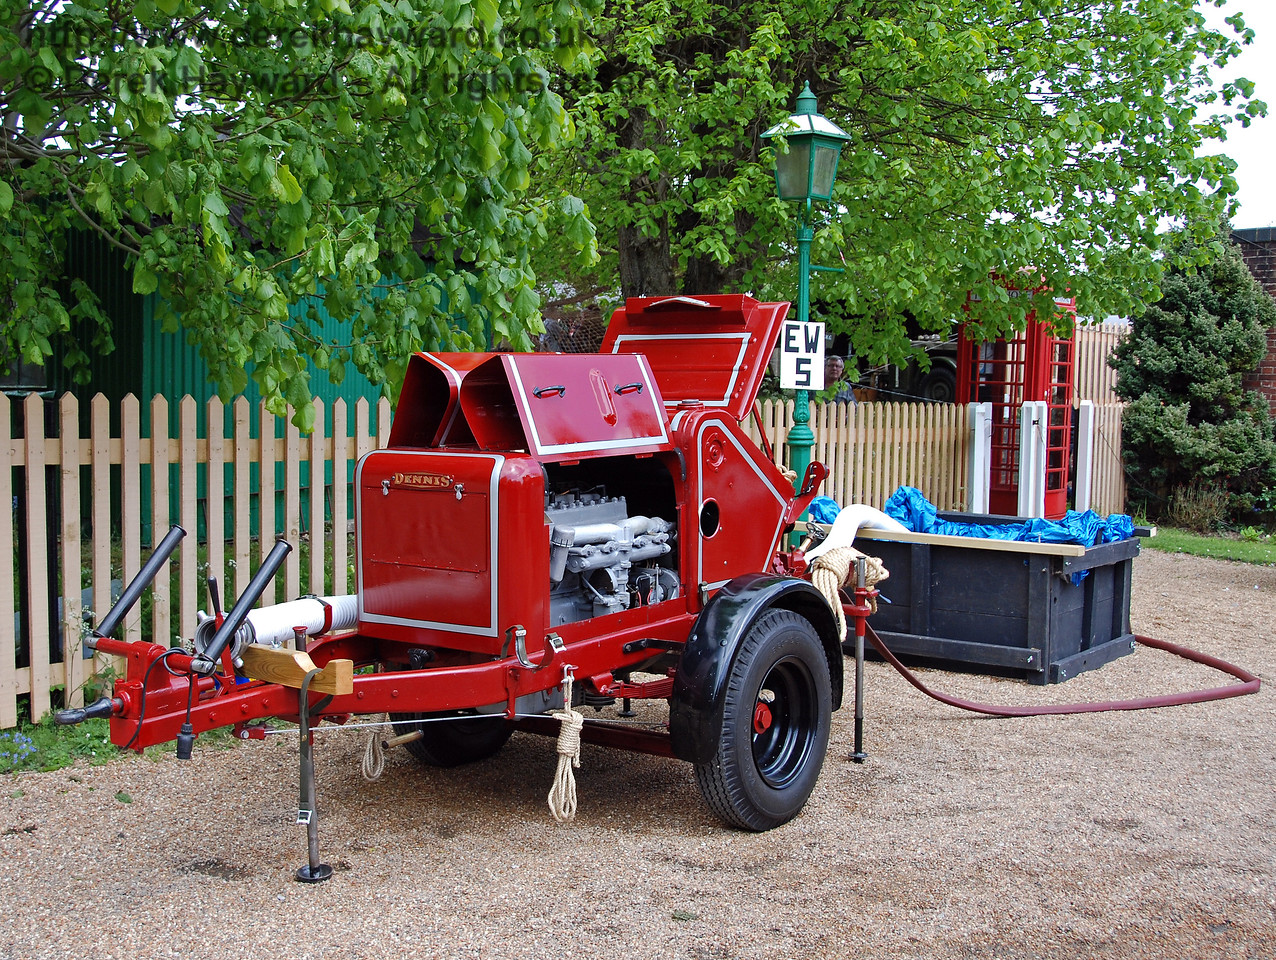 A fire pump at Kingscote. 09.05.2009